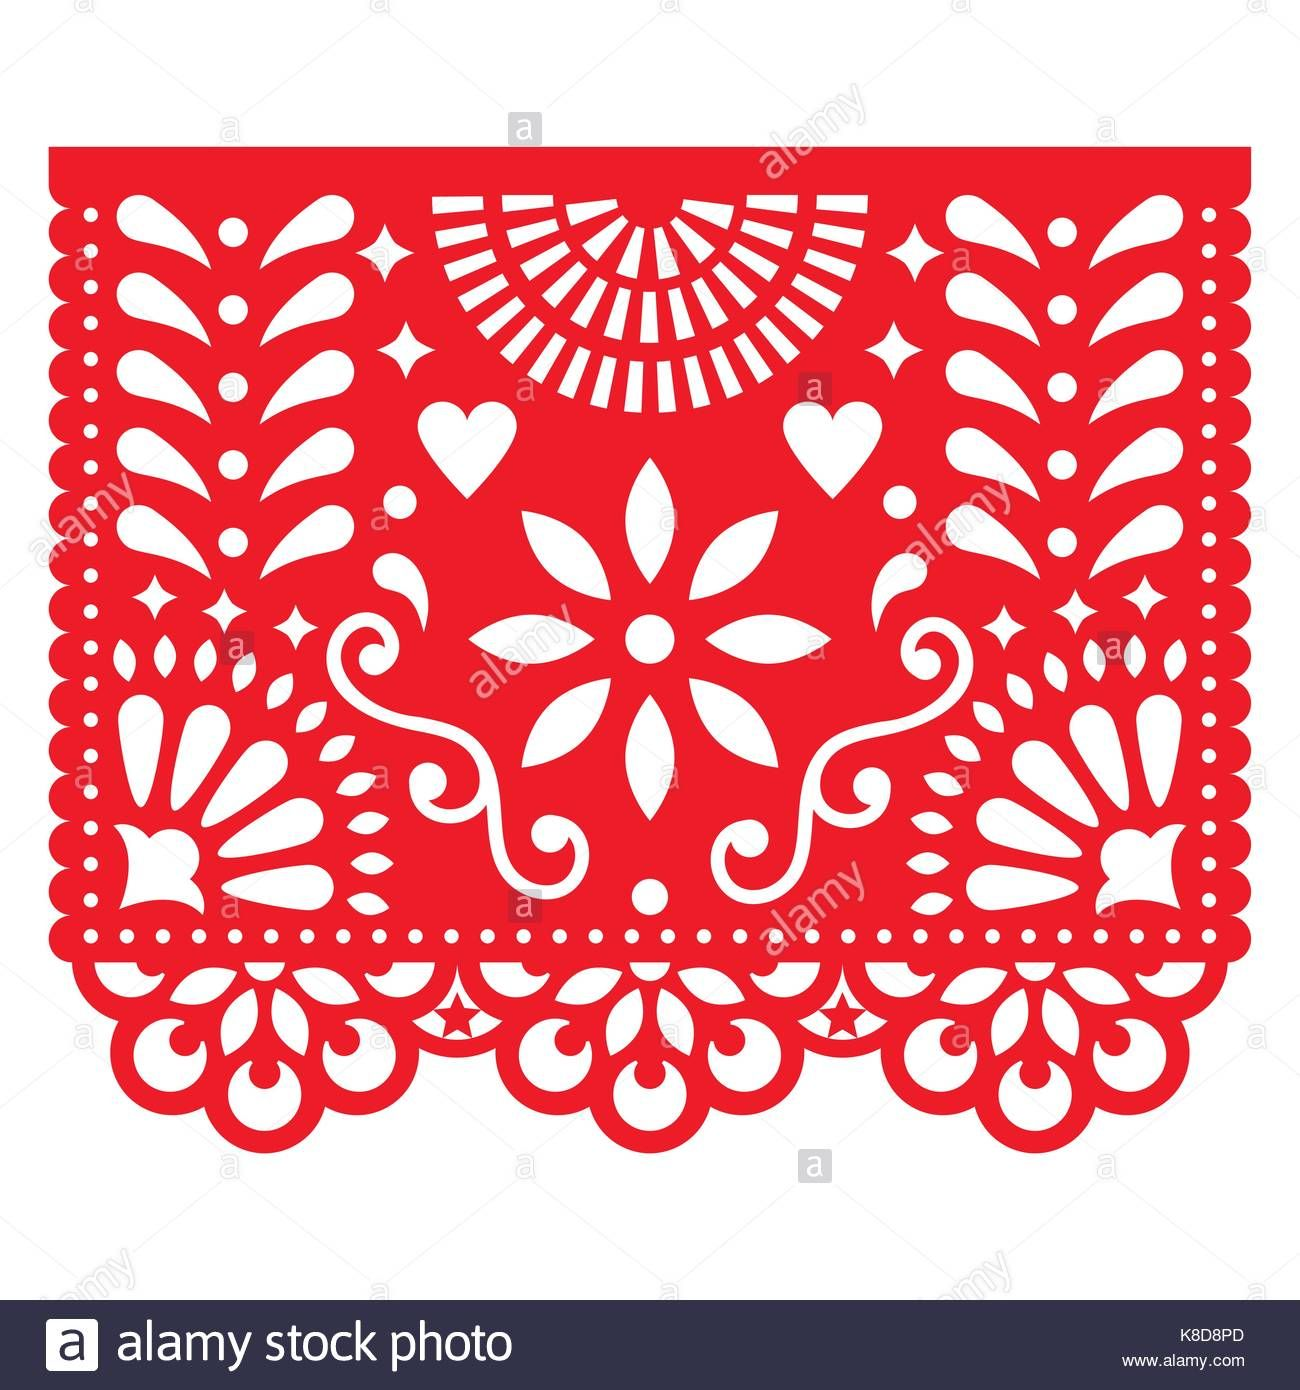 Download This Stock Vector Mexican Paper Decorations Papel Picado